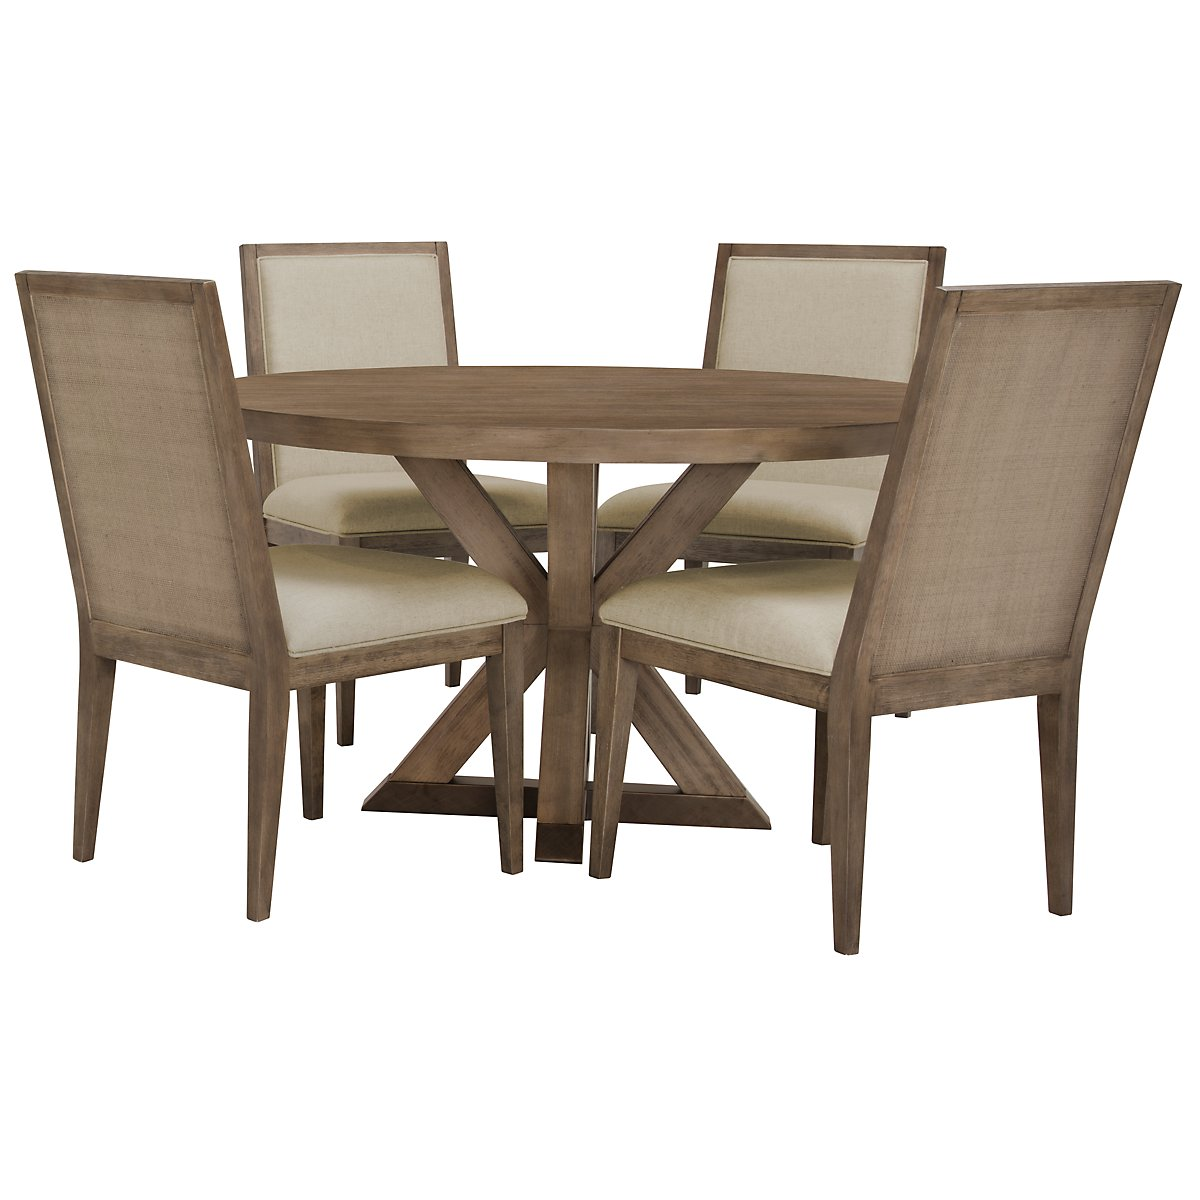 Mirabelle Light Tone Round Table & 4 Upholstered Chairs